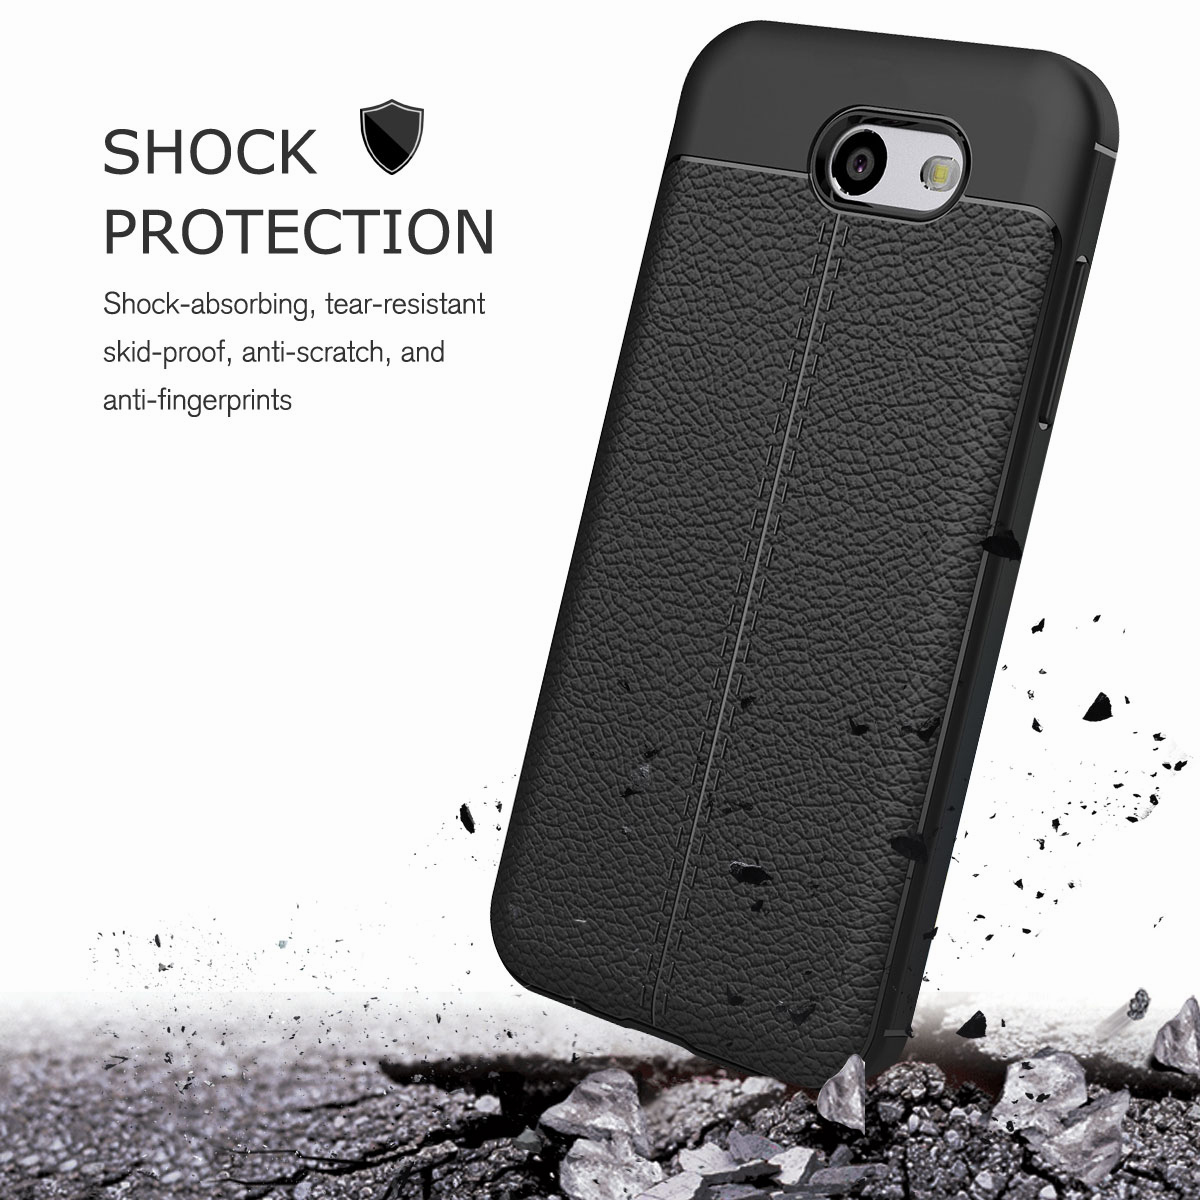 Luxury Shockproof Silicone Soft Case For Samsung Galaxy J3 Emerge Softcase Thin Droff Matte Black J5 Prime